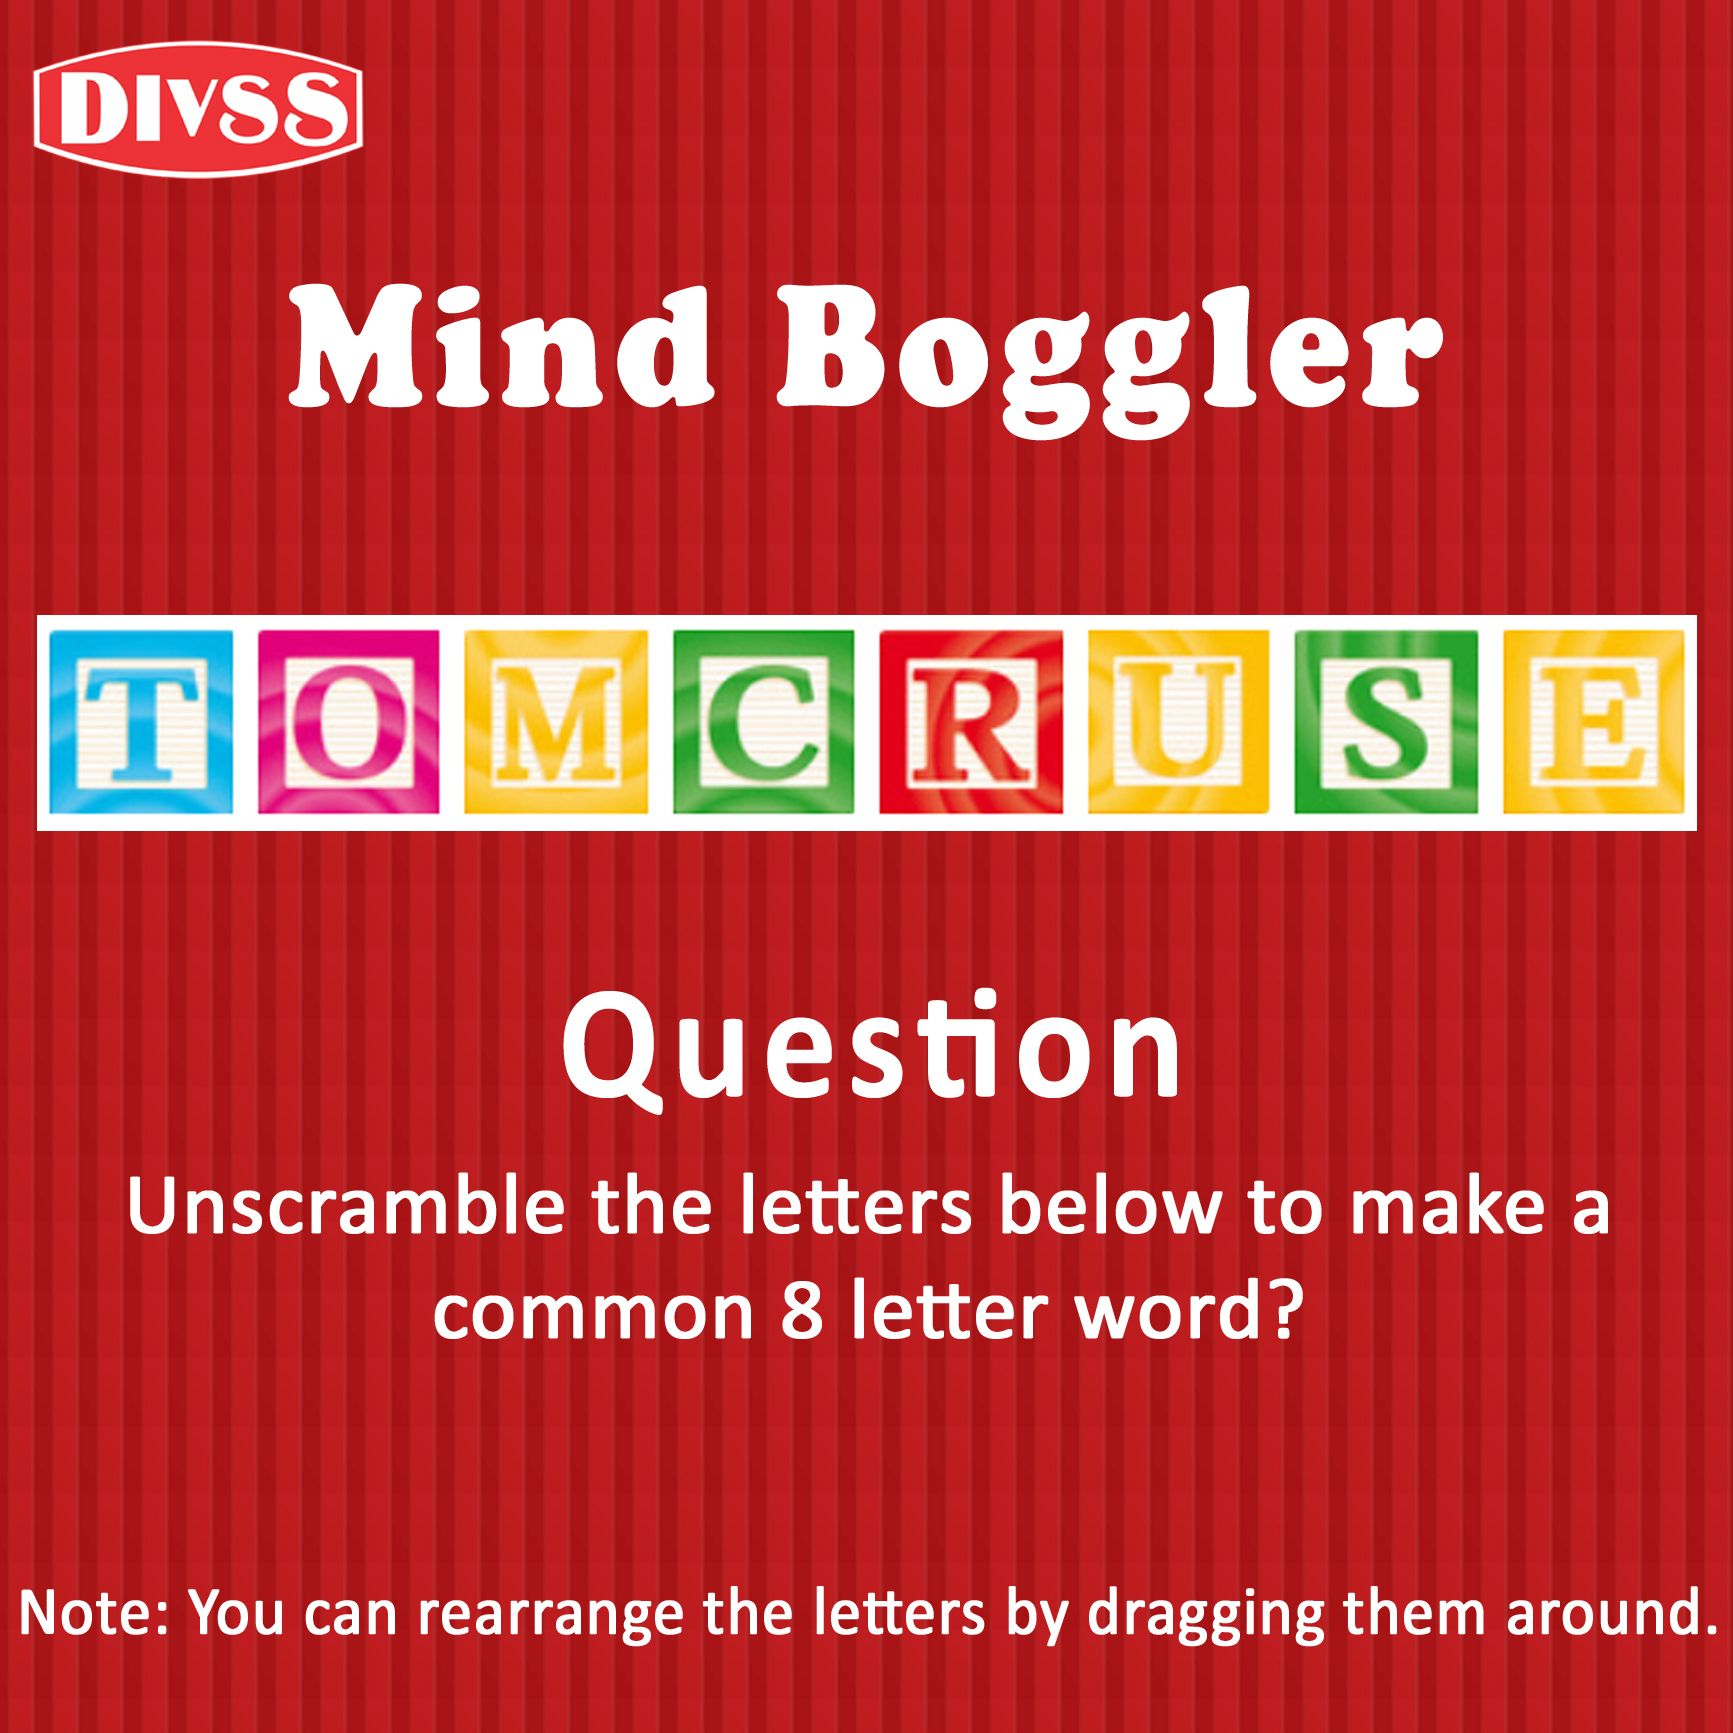 Divss Mind Boggler Tomcruse Question Unscramble The Letters Below